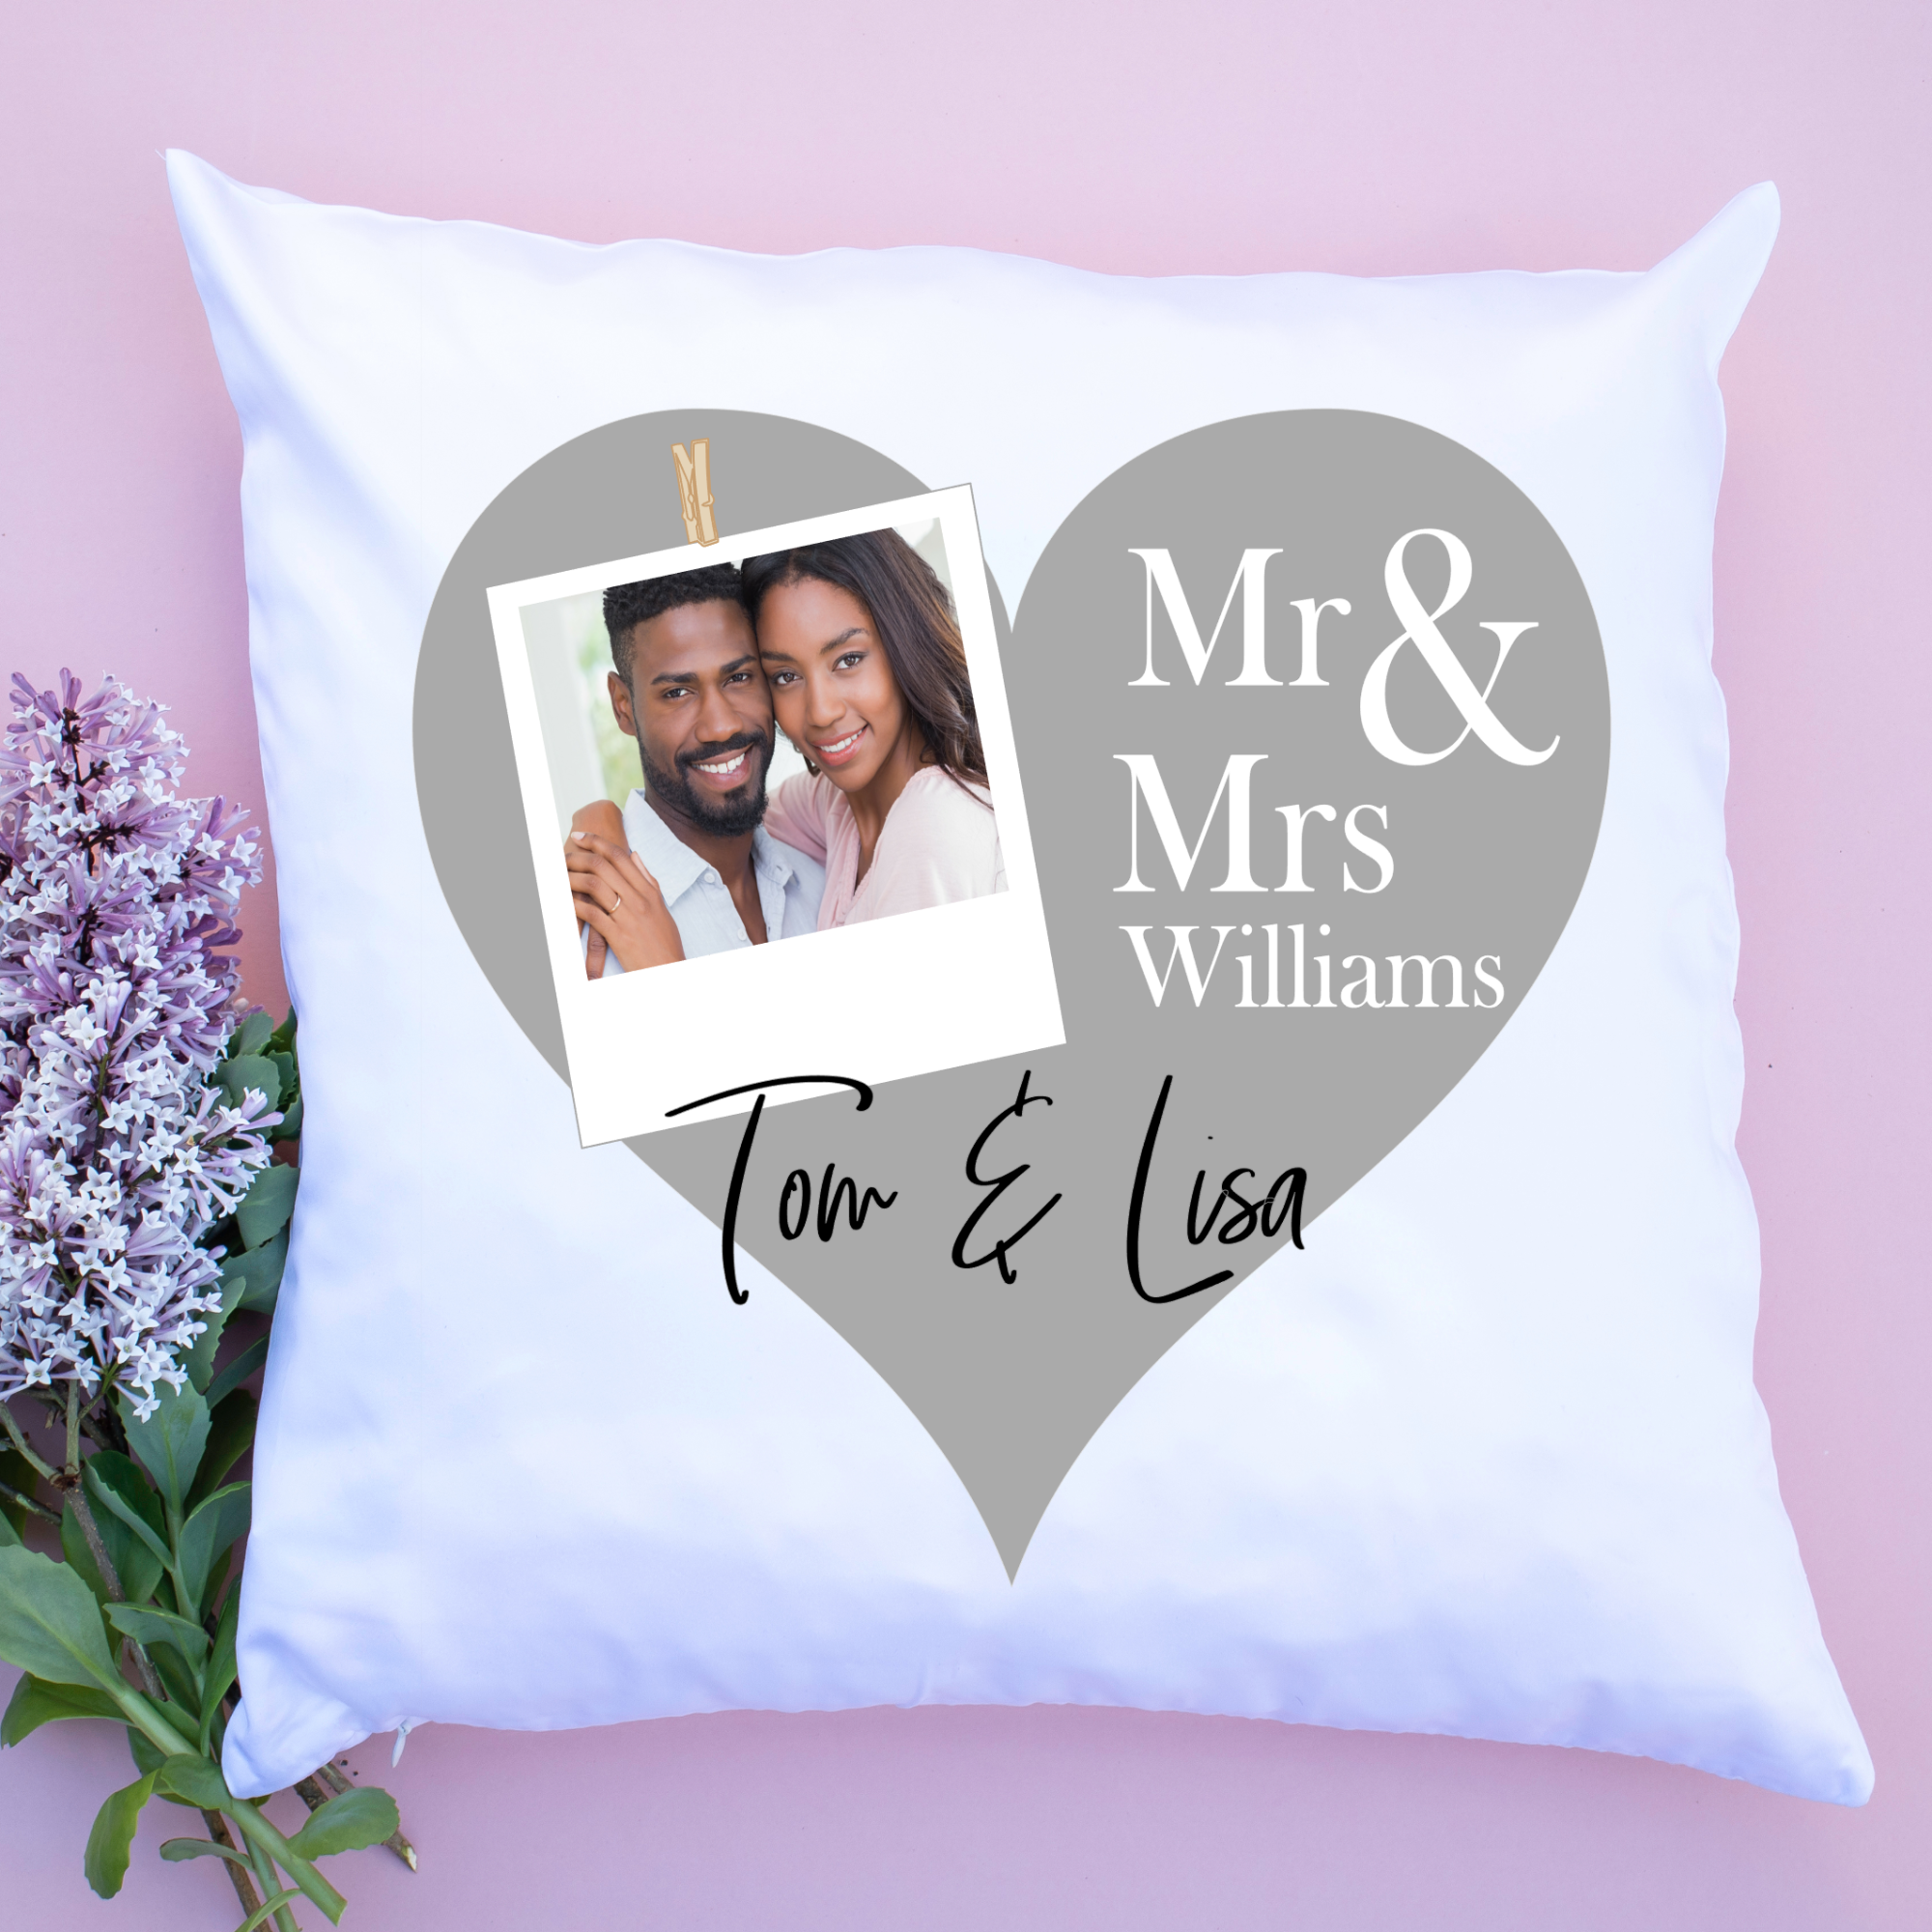 Luxury personalised cushion covers